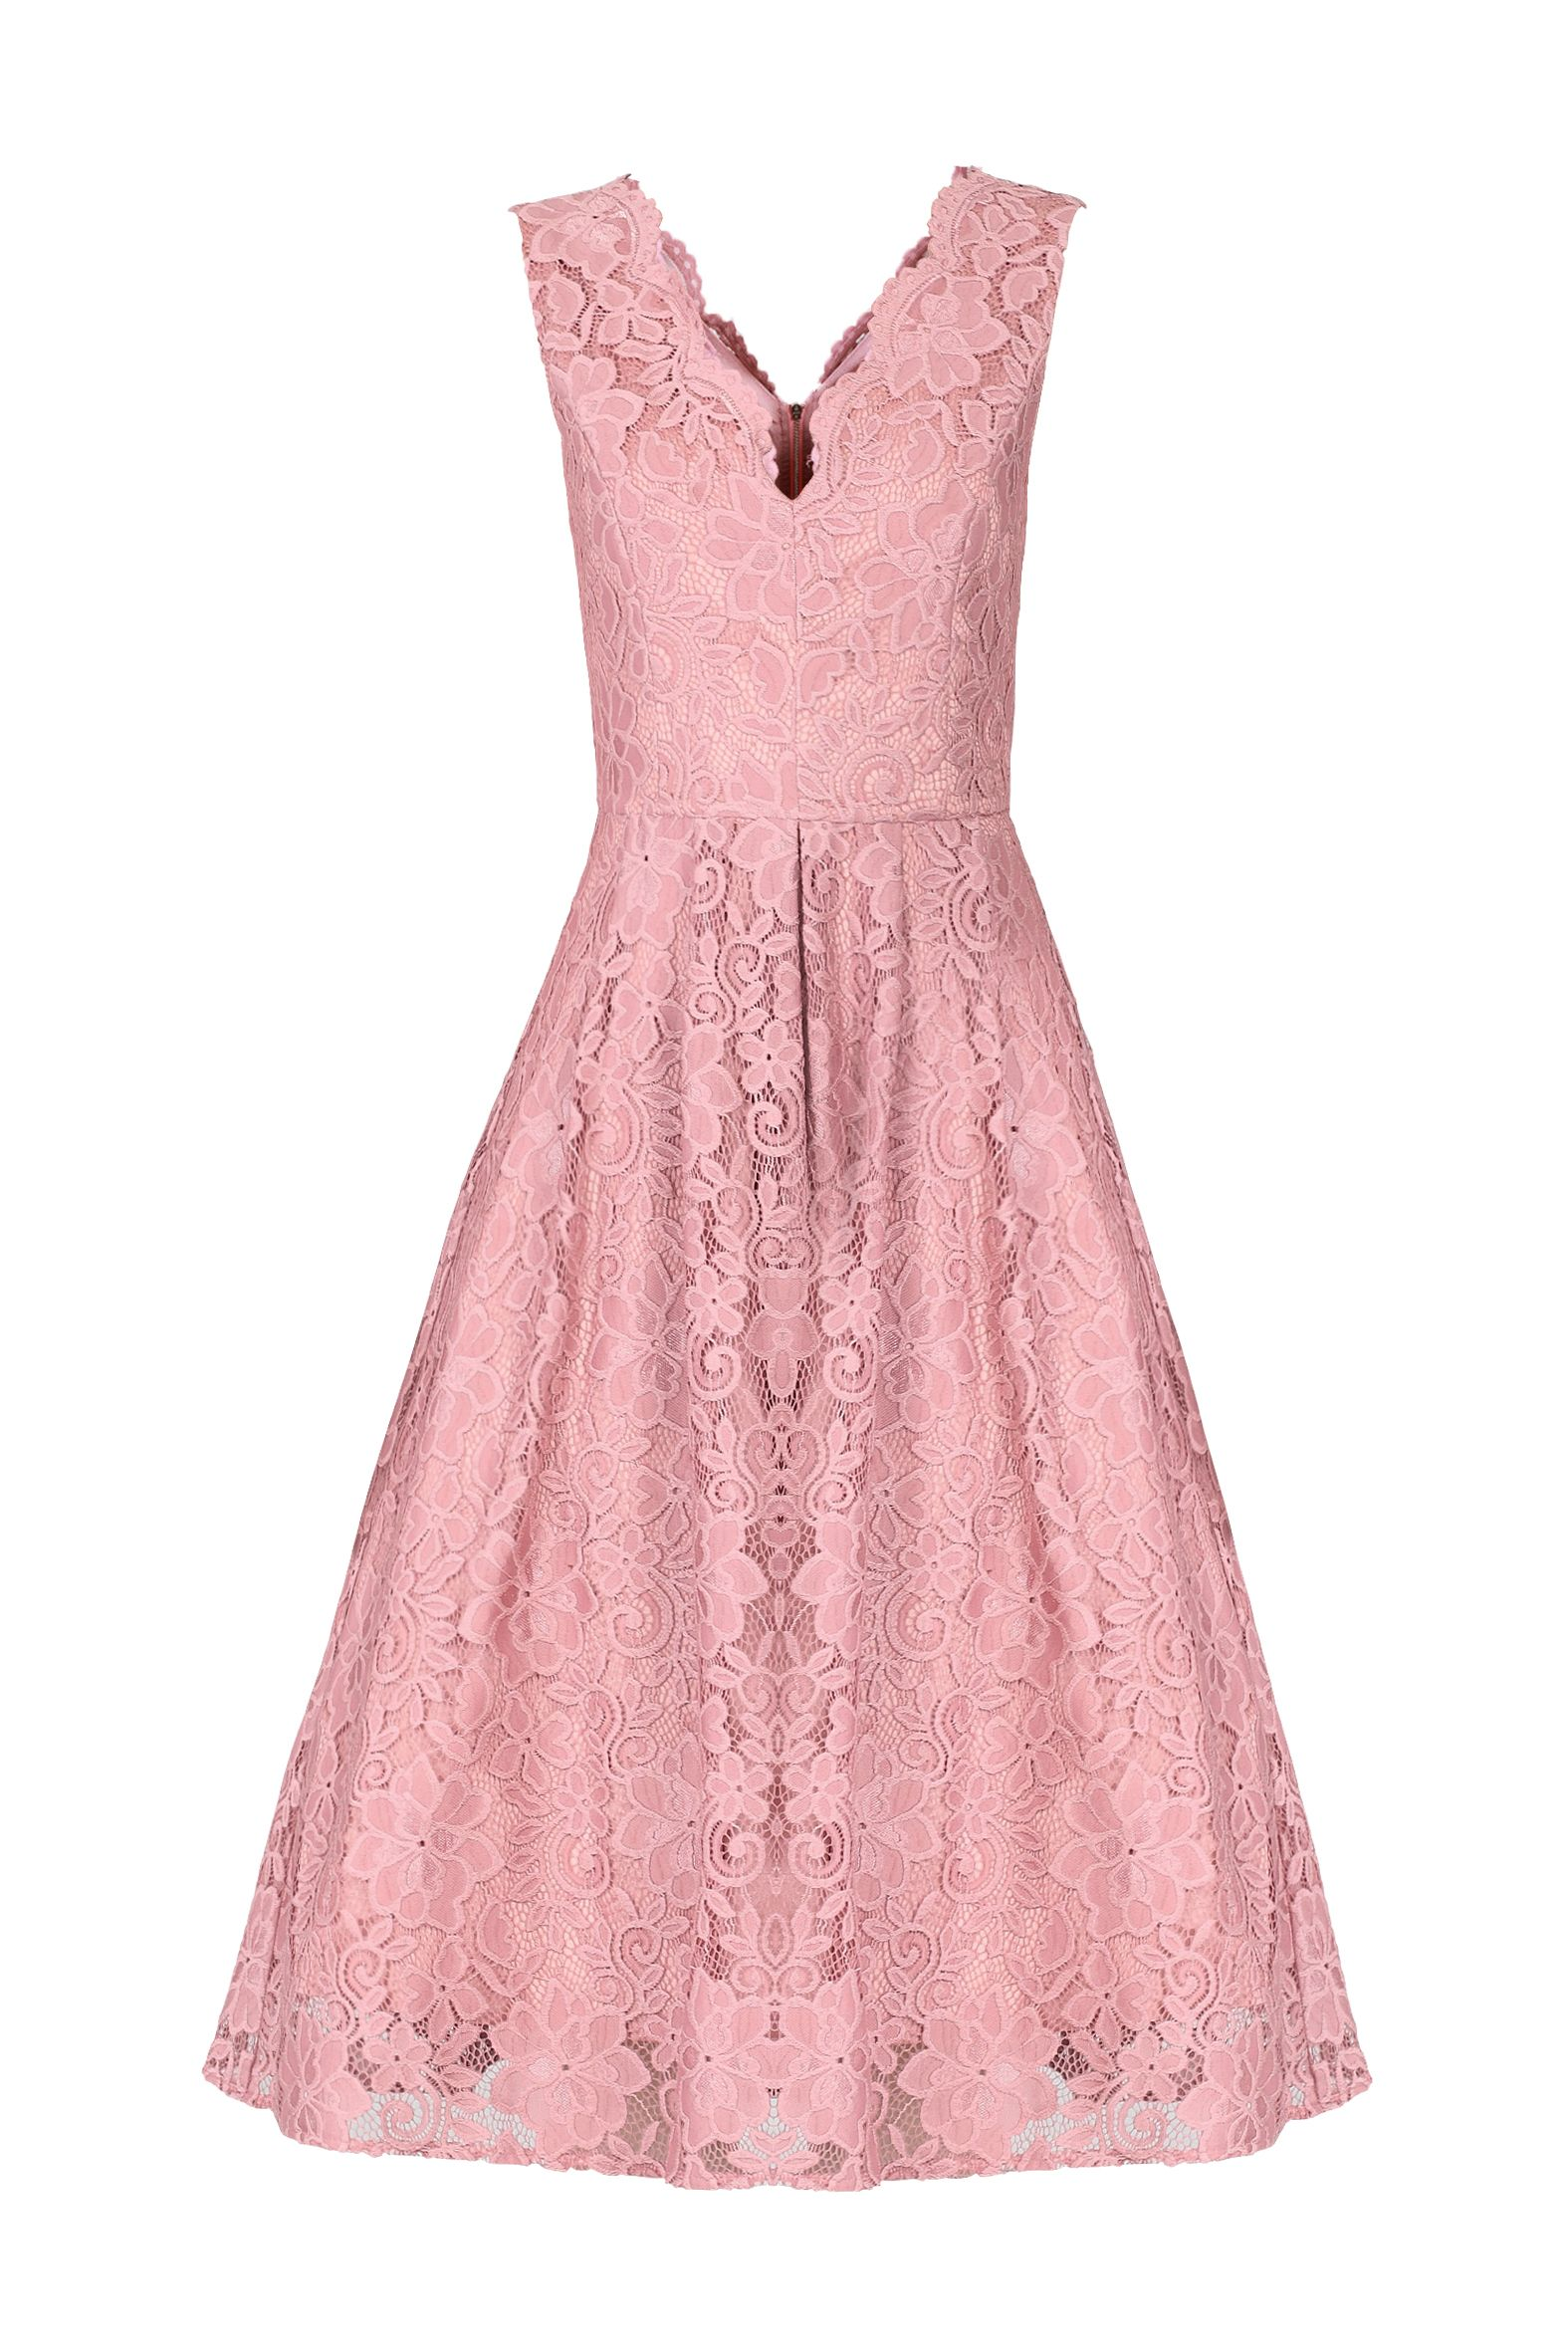 Jolie Moi Scalloped Lace Prom Dress, Pink